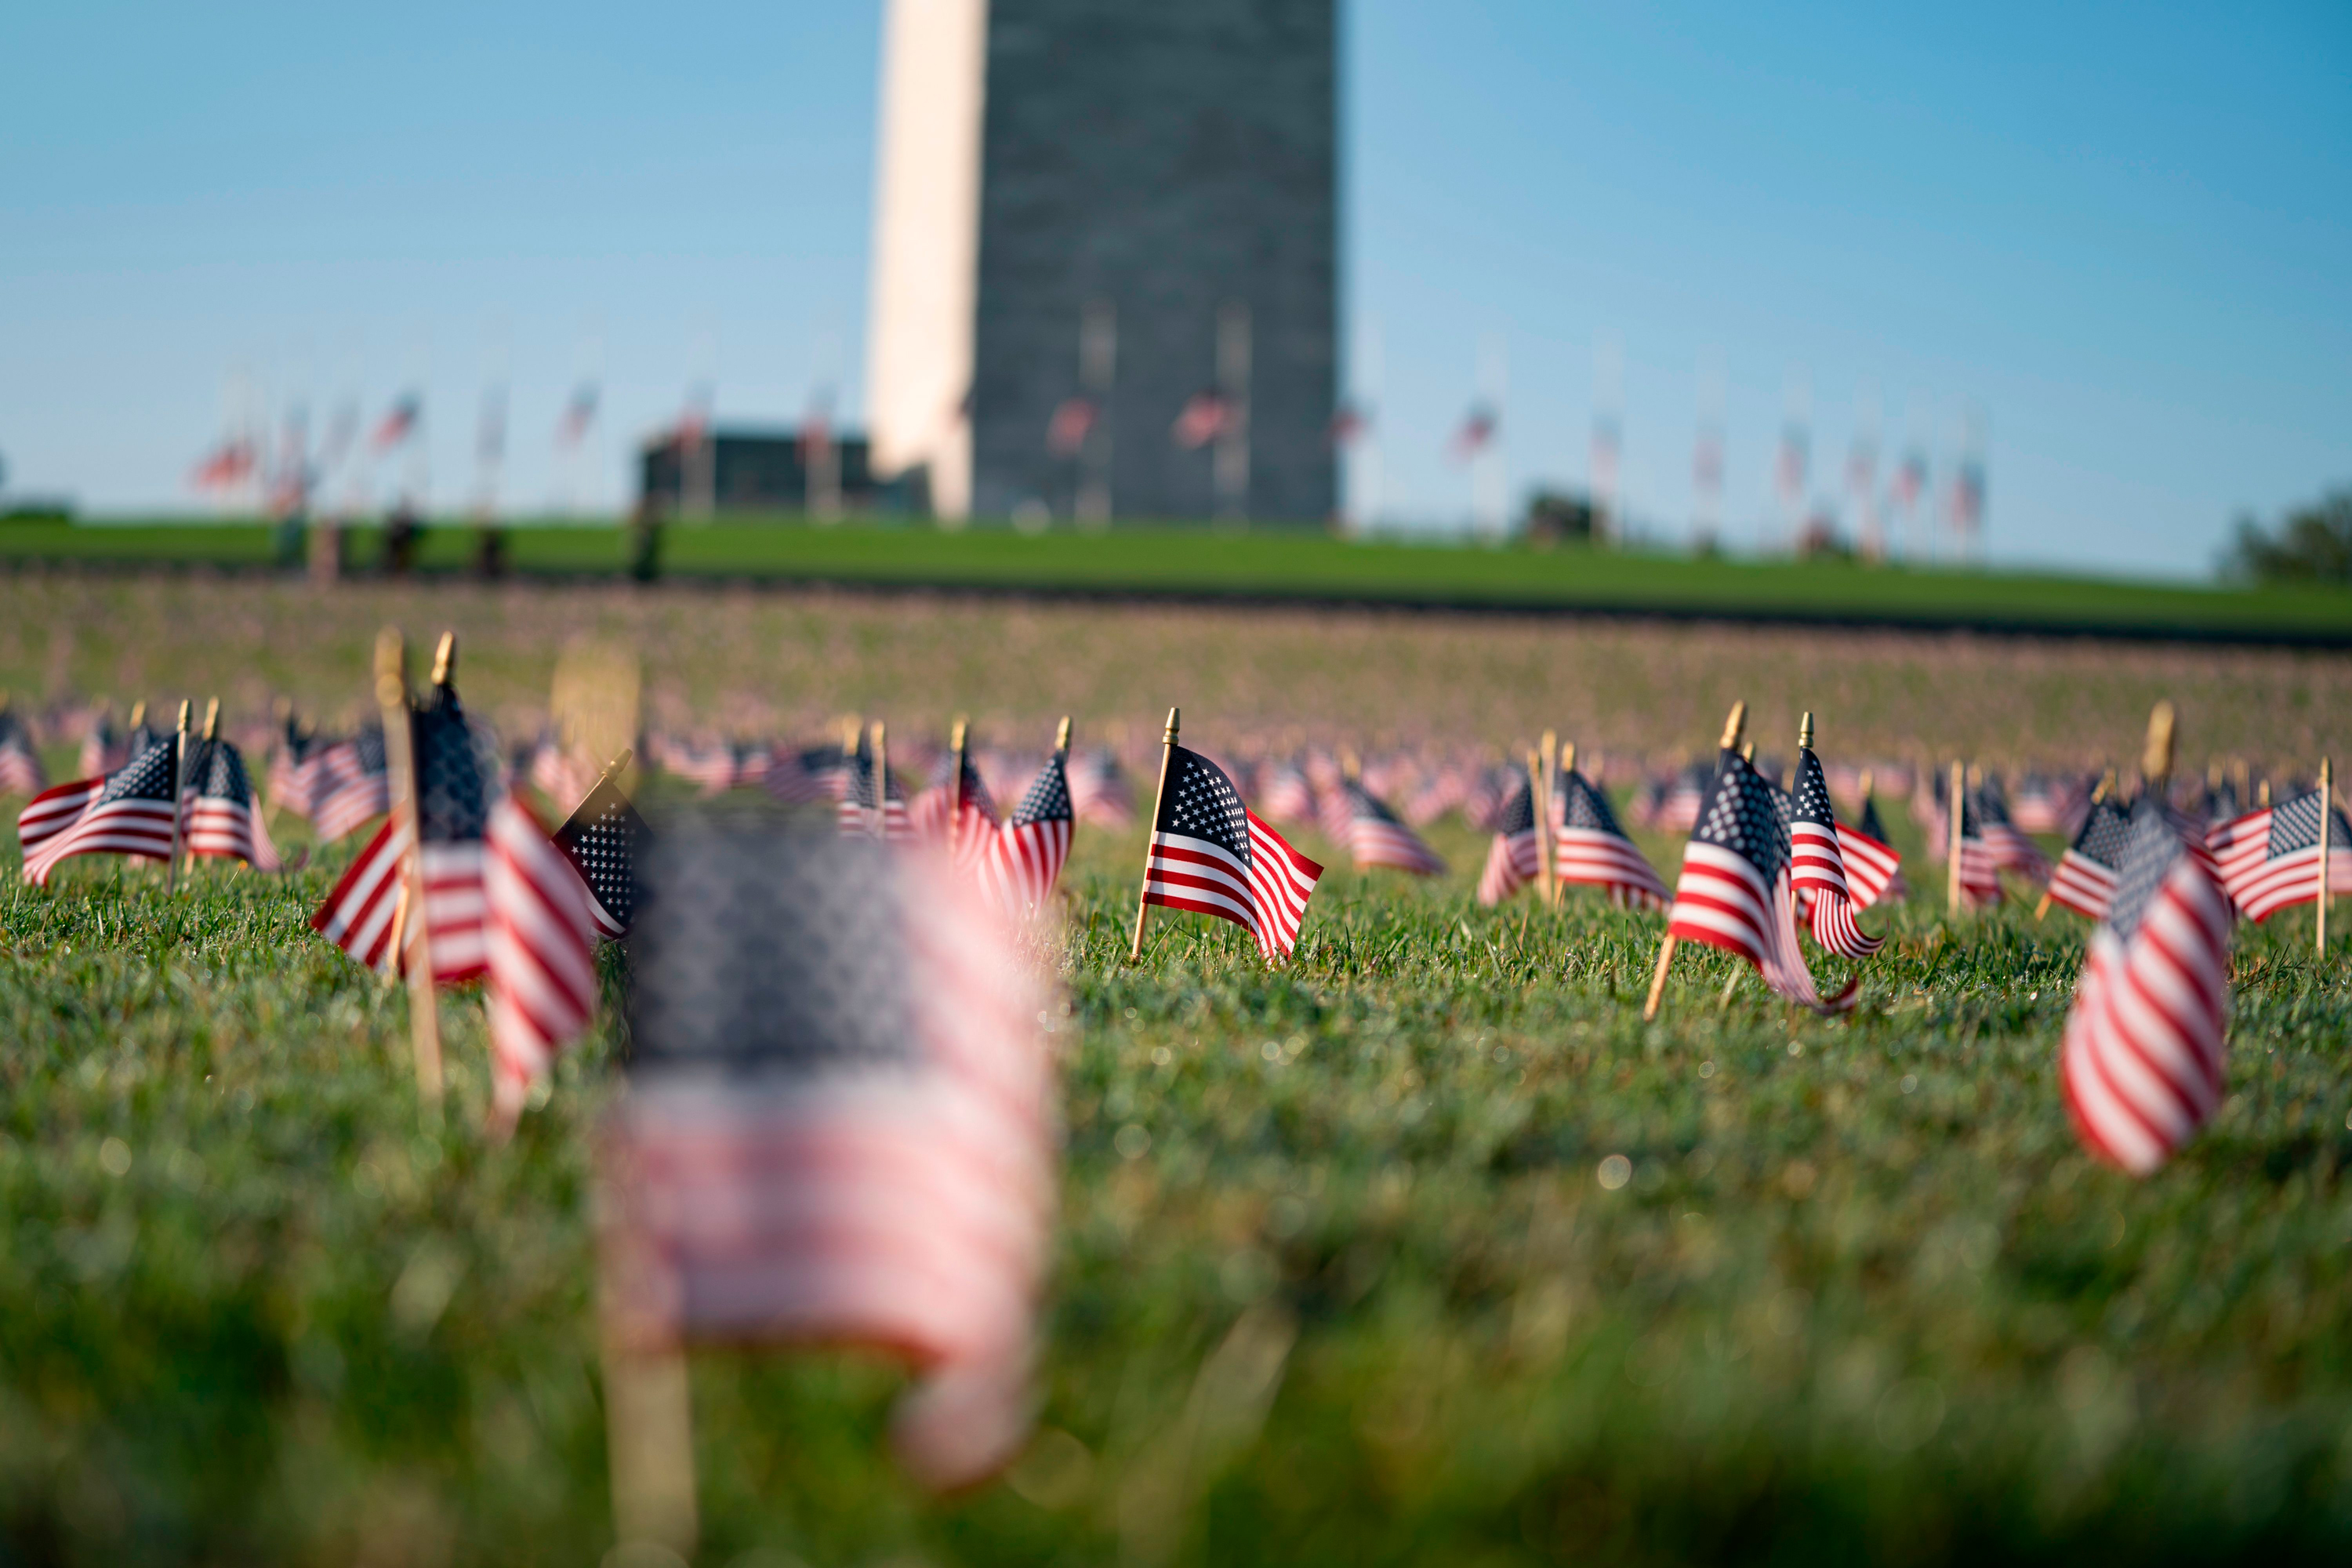 Twenty thousand flags placed on National Mall to memorialize Covid-19 deaths in the US